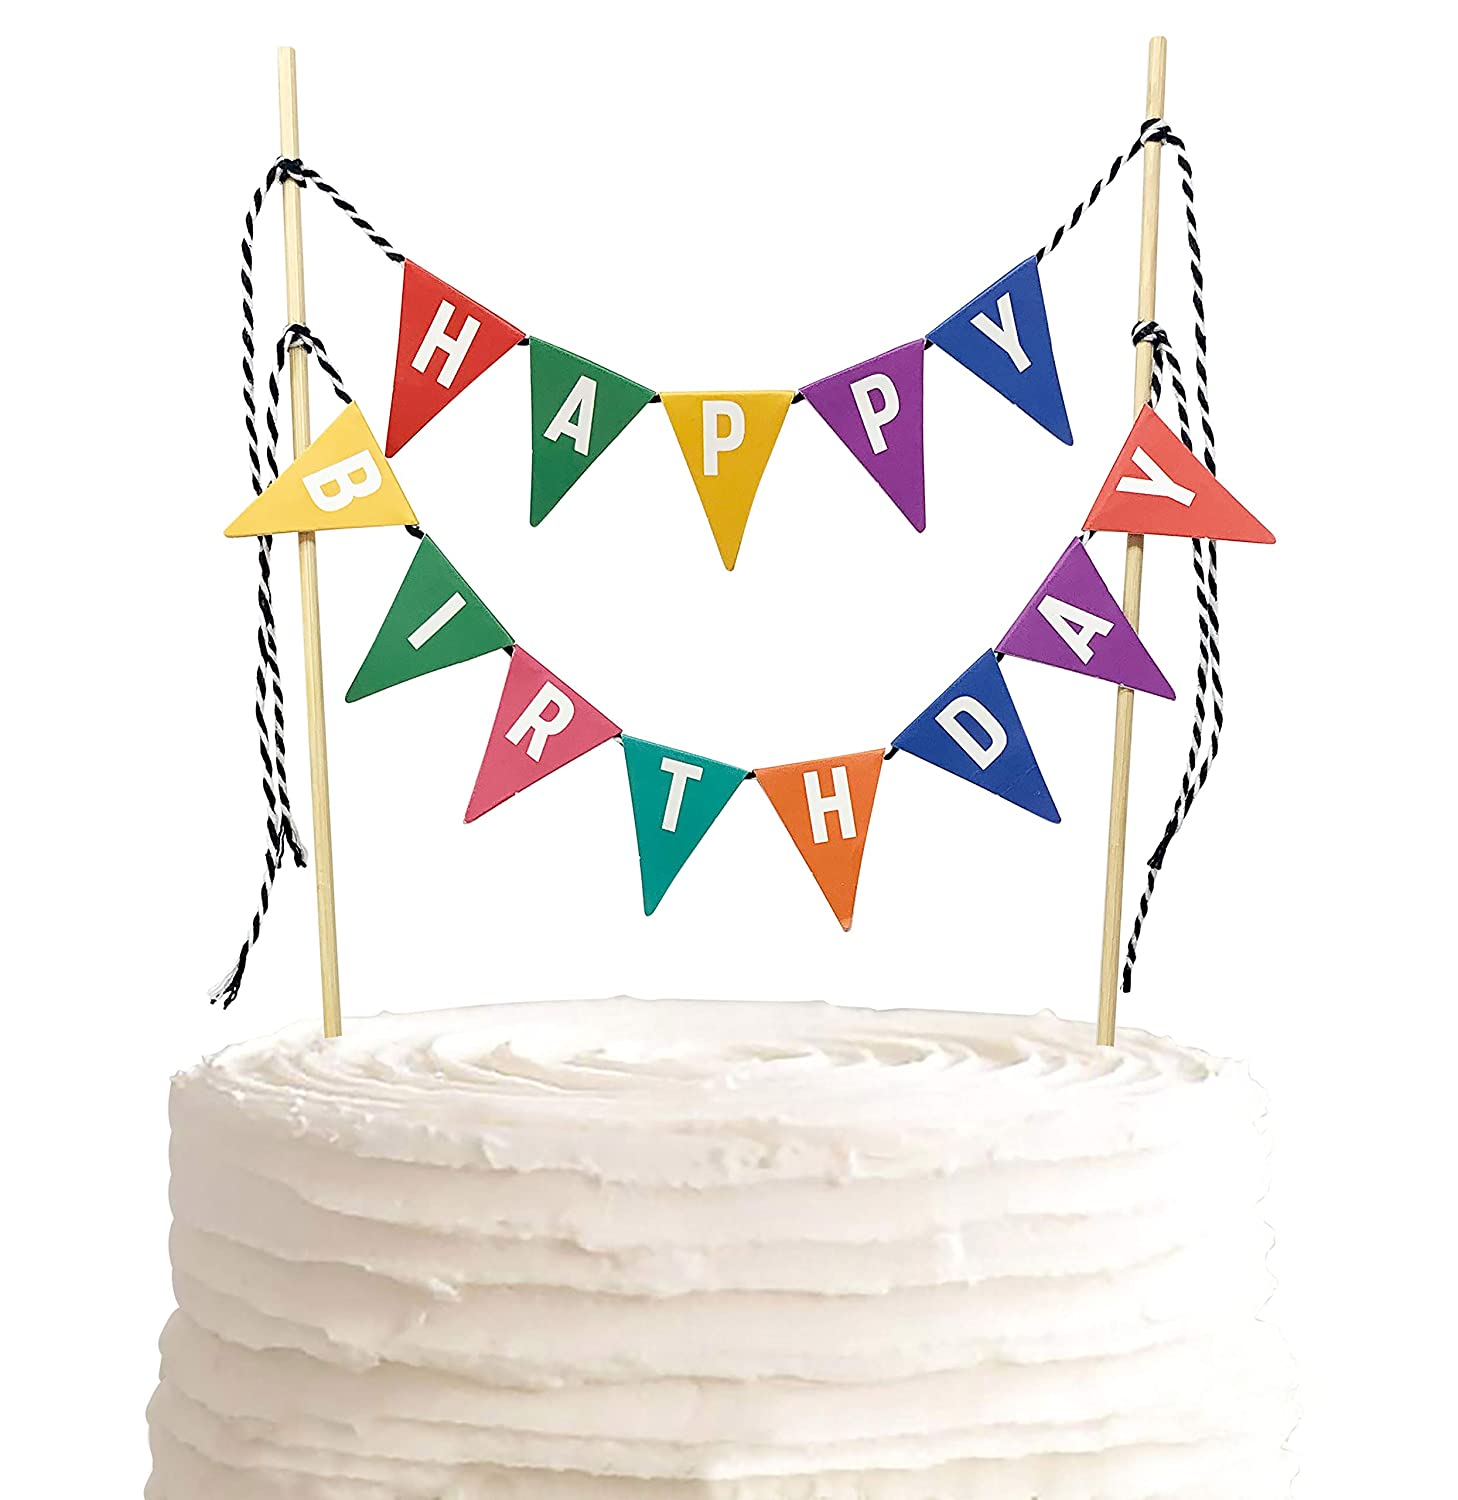 TECCA Happy Birthday Cake Topper Banner with Colorful Double-Sided Bunting Paper Flags. Handmade Food-Grade Safe Multi-Colored Party Decor. Pre-assembled and Reusable for any Age or Themed Party.